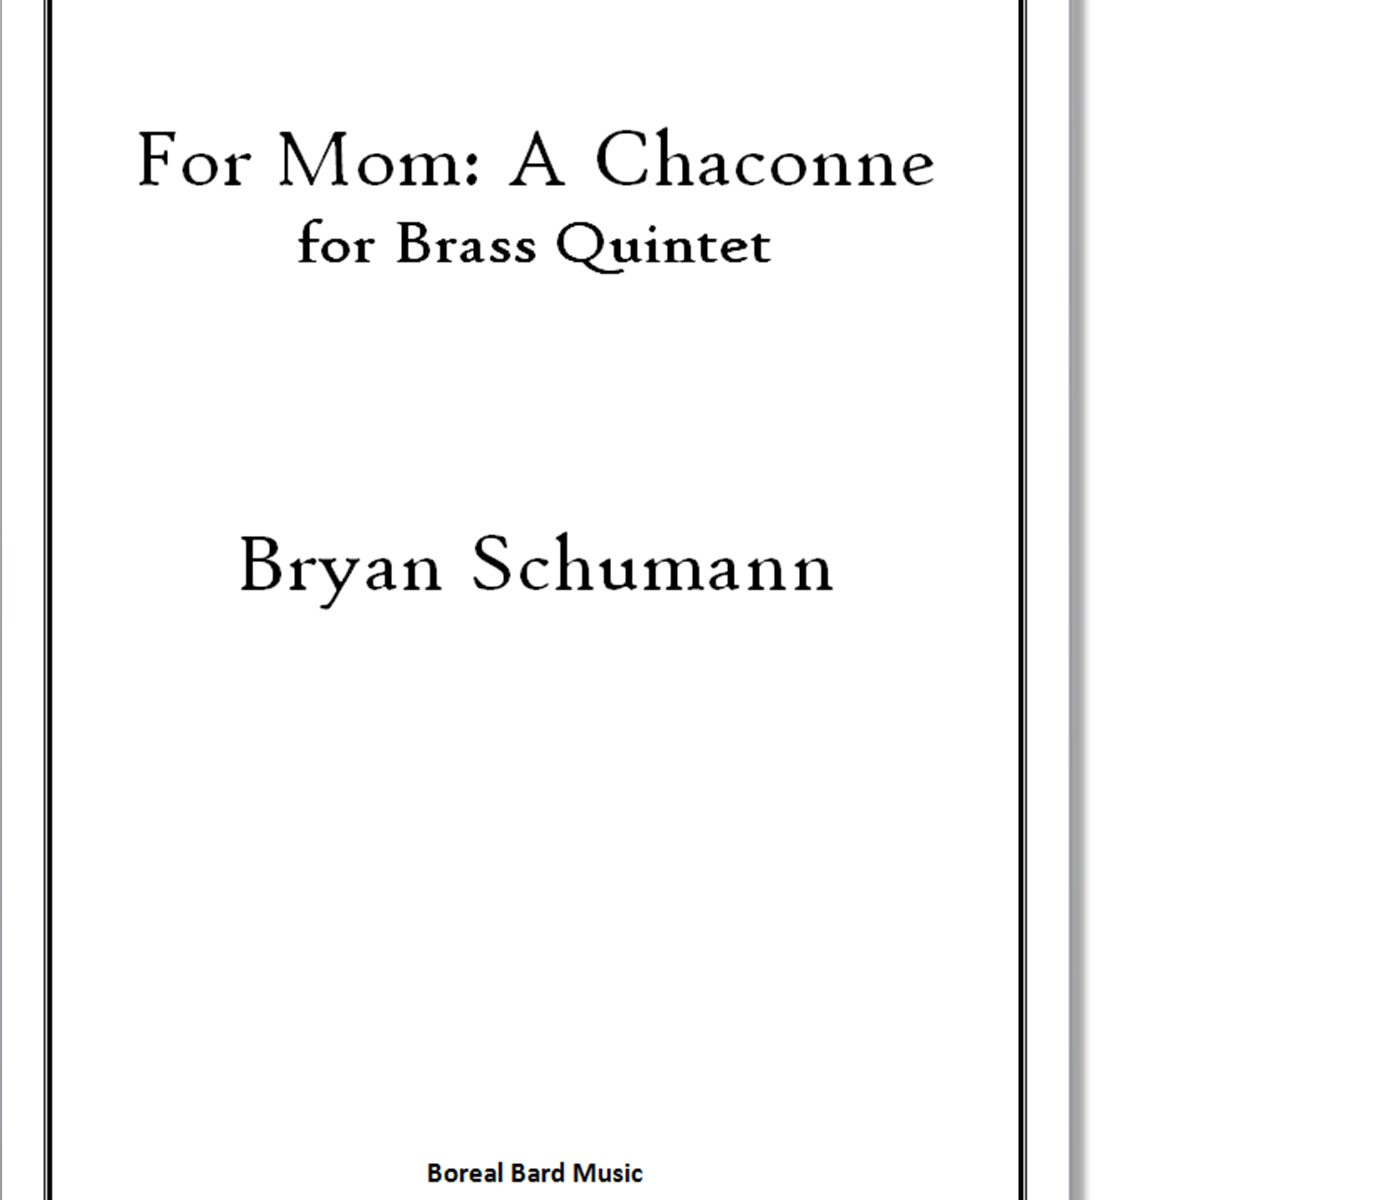 For Mom: A Chaconne for Brass Quintet - Sheet Music Product Image